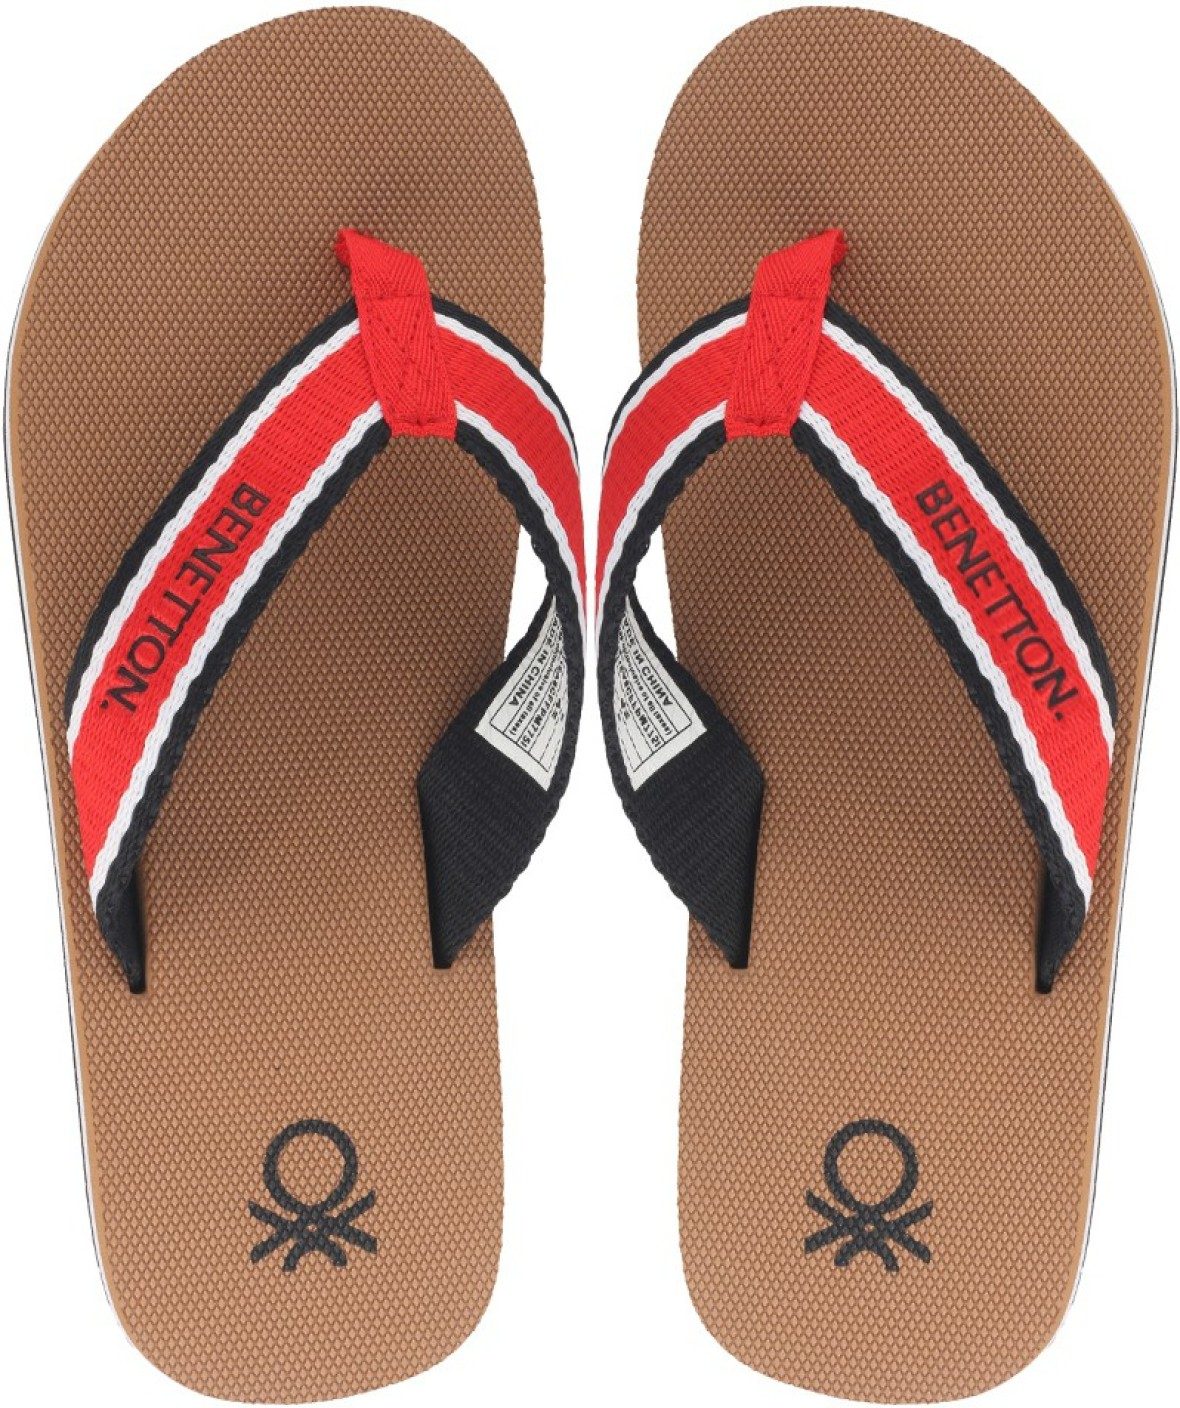 United Colors Of Benetton Flip Flops Buy Red Color United Colors Of Benetton Flip Flops Online